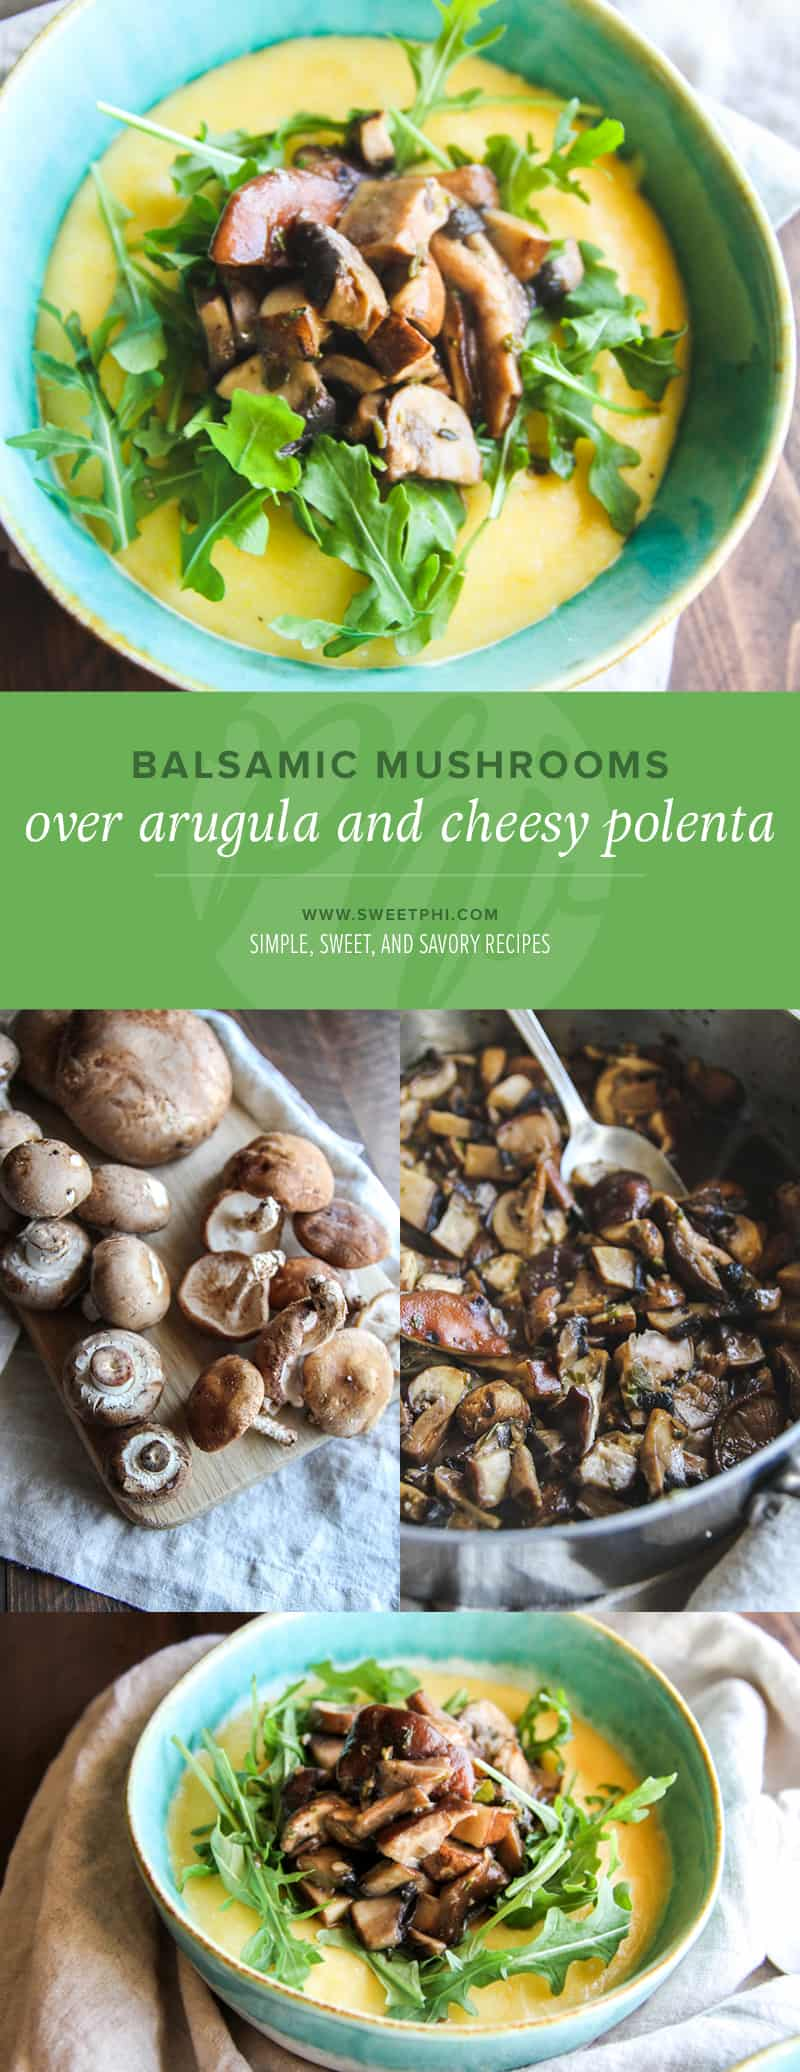 Balsamic mushrooms over arugula and cheesy polenta - a great meatless Monday gluten free dinner from @sweetphi